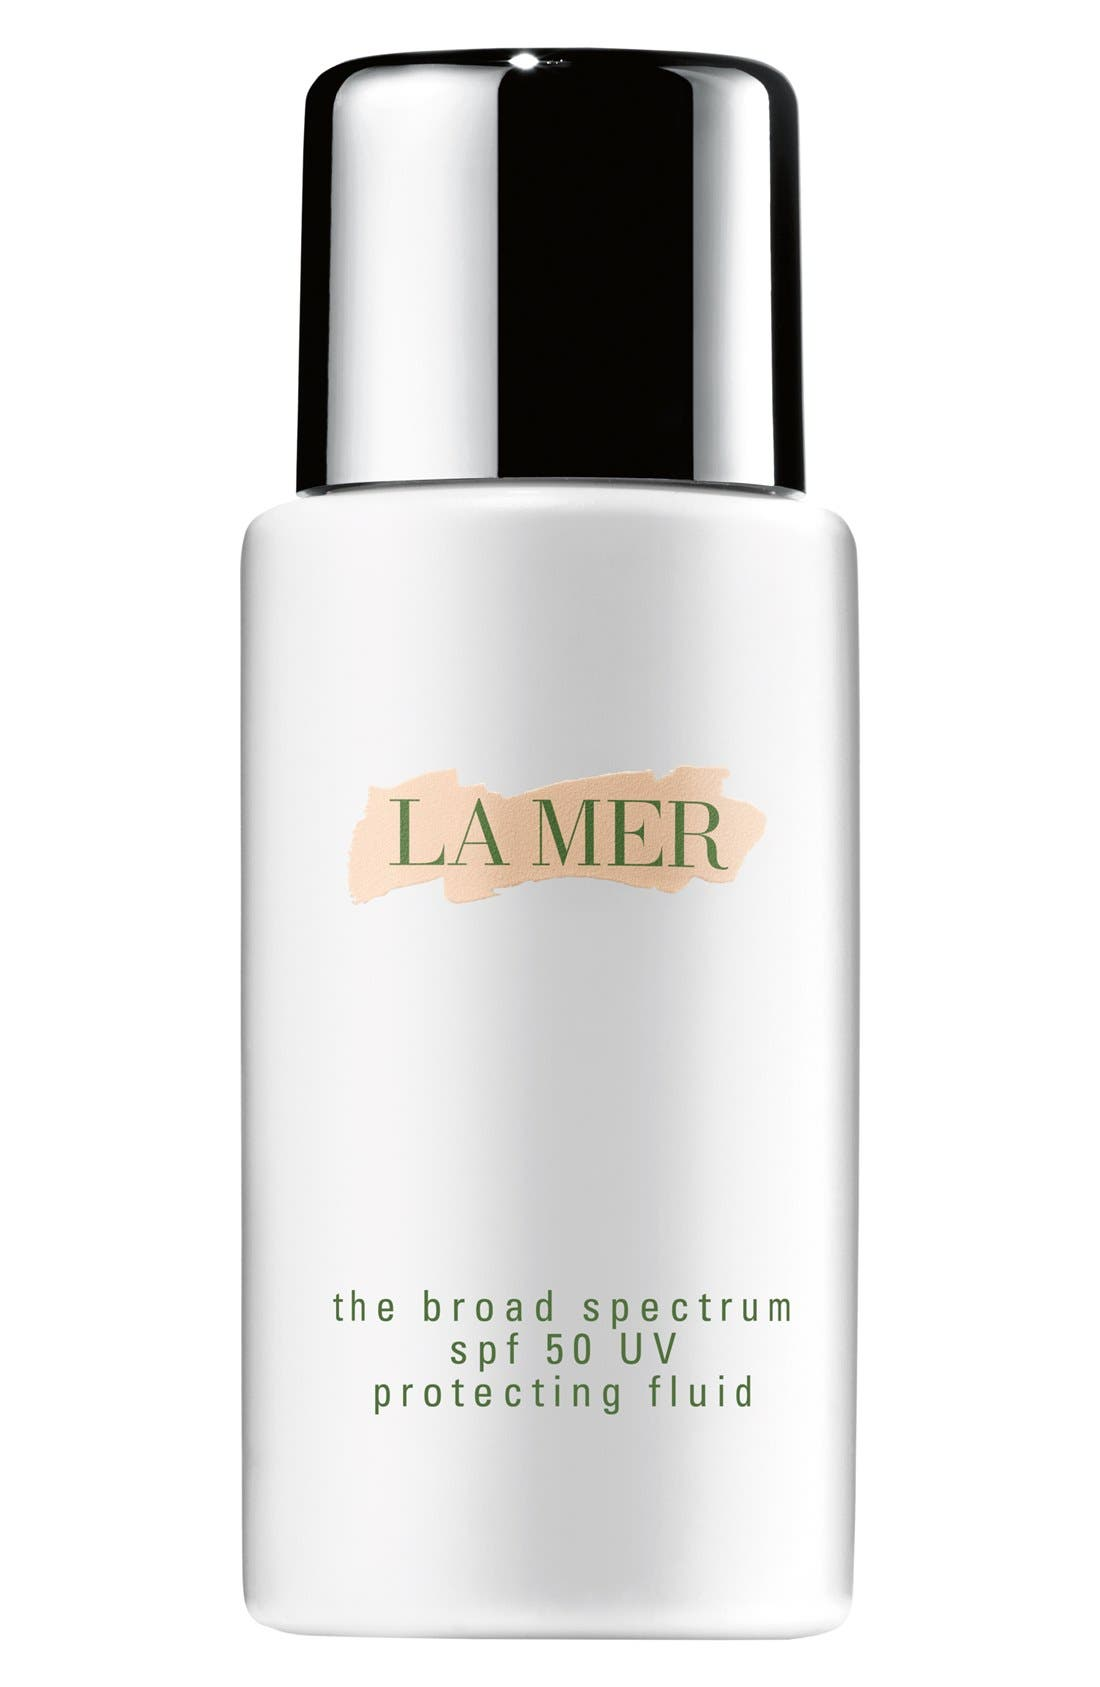 La Mer The Broad Spectrum SPF 50 Daily UV Protecting Fluid